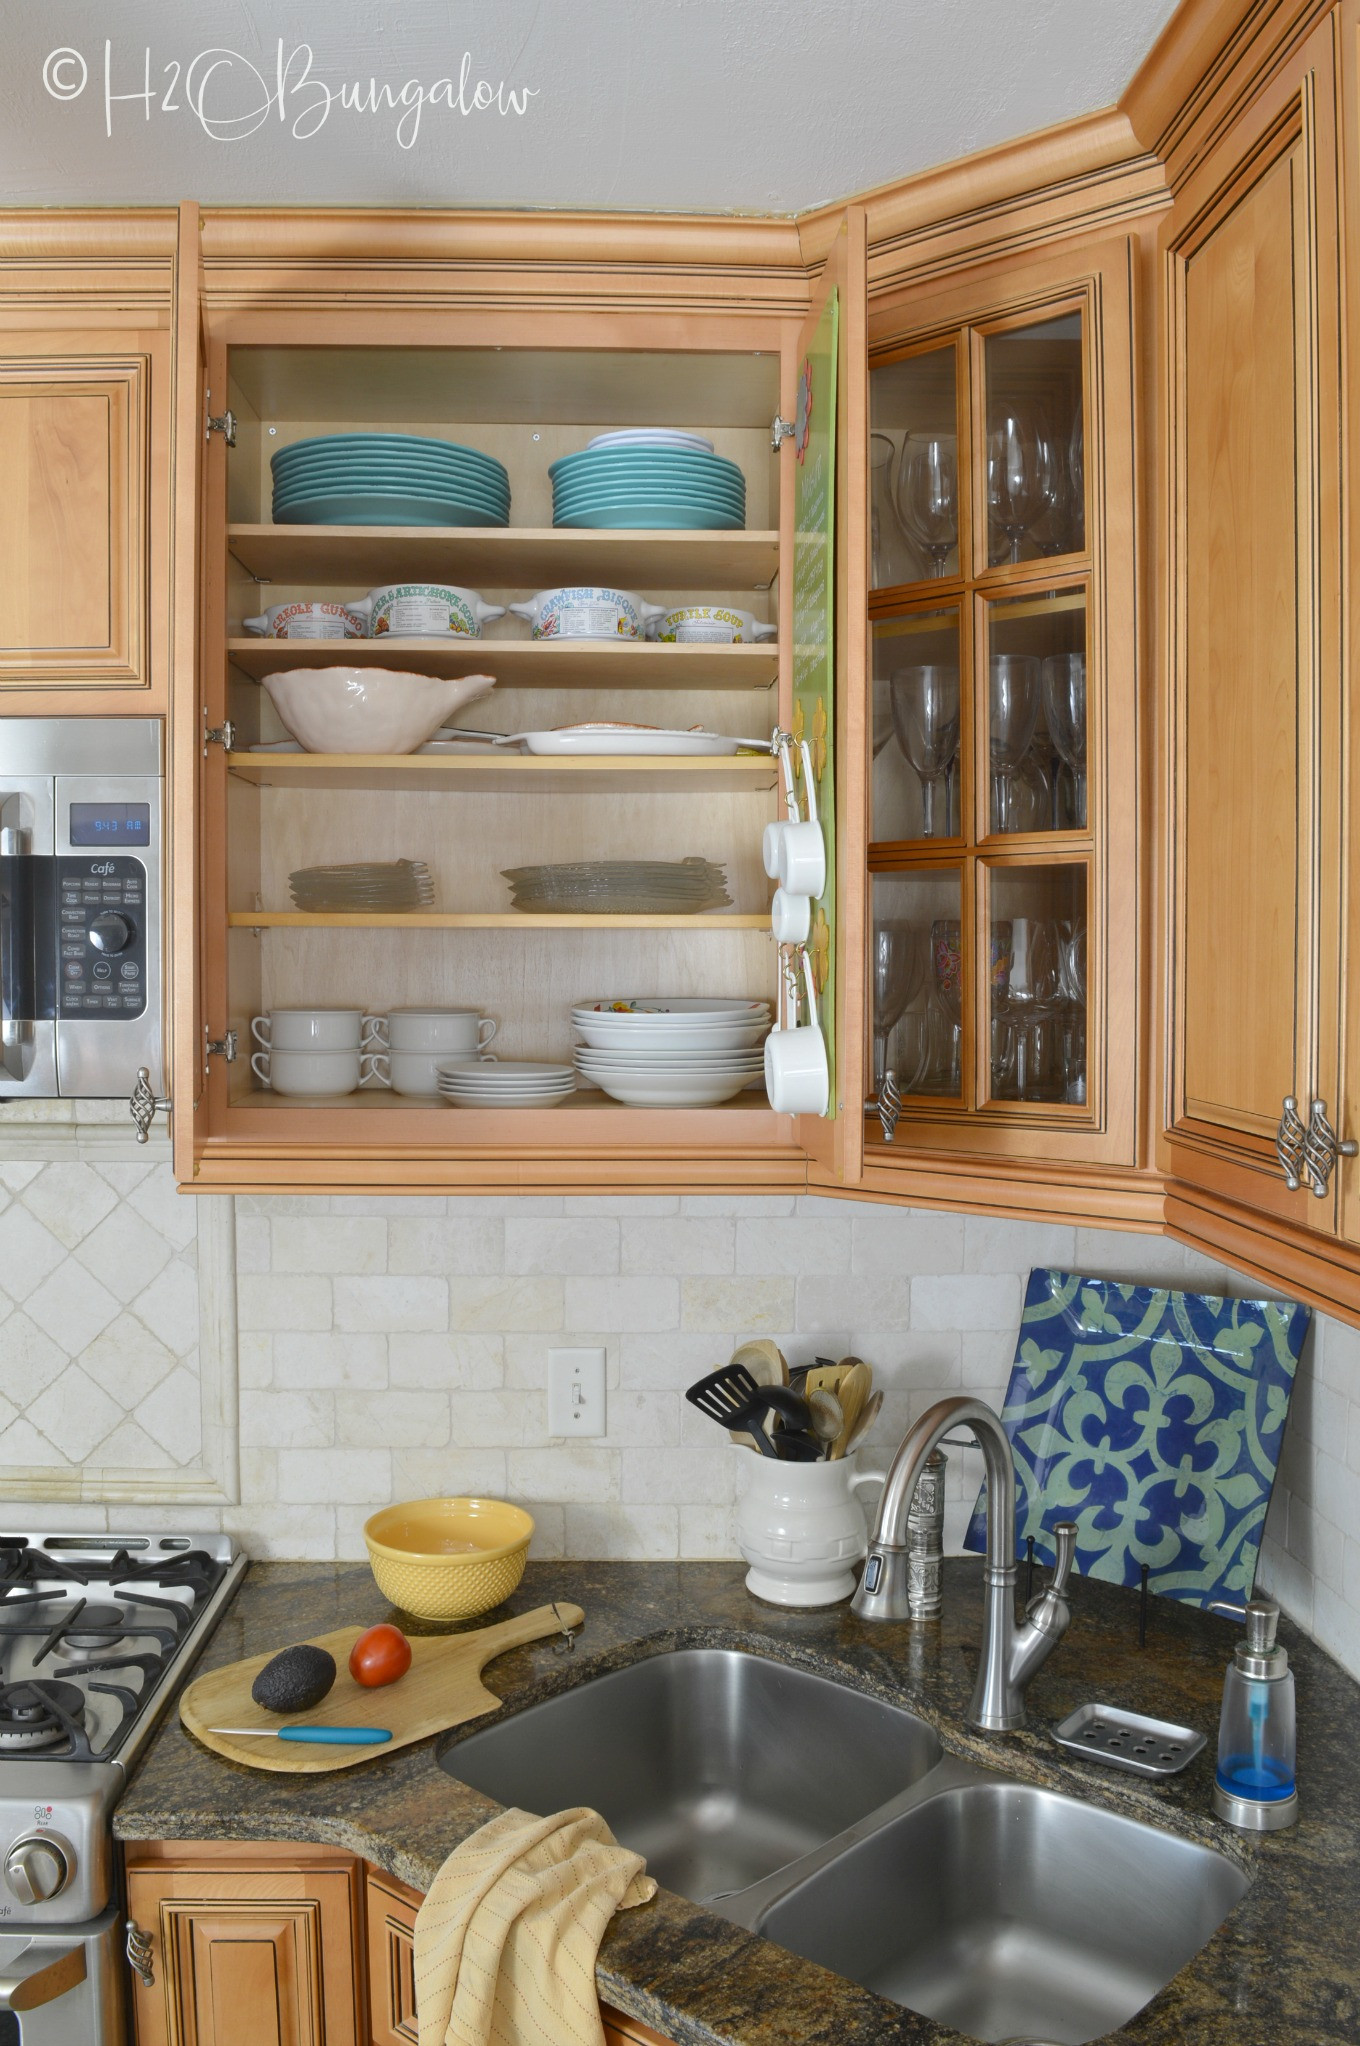 Extra Storage Cabinet For Kitchen  How to Add Extra Shelves to Kitchen Cabinets H2OBungalow